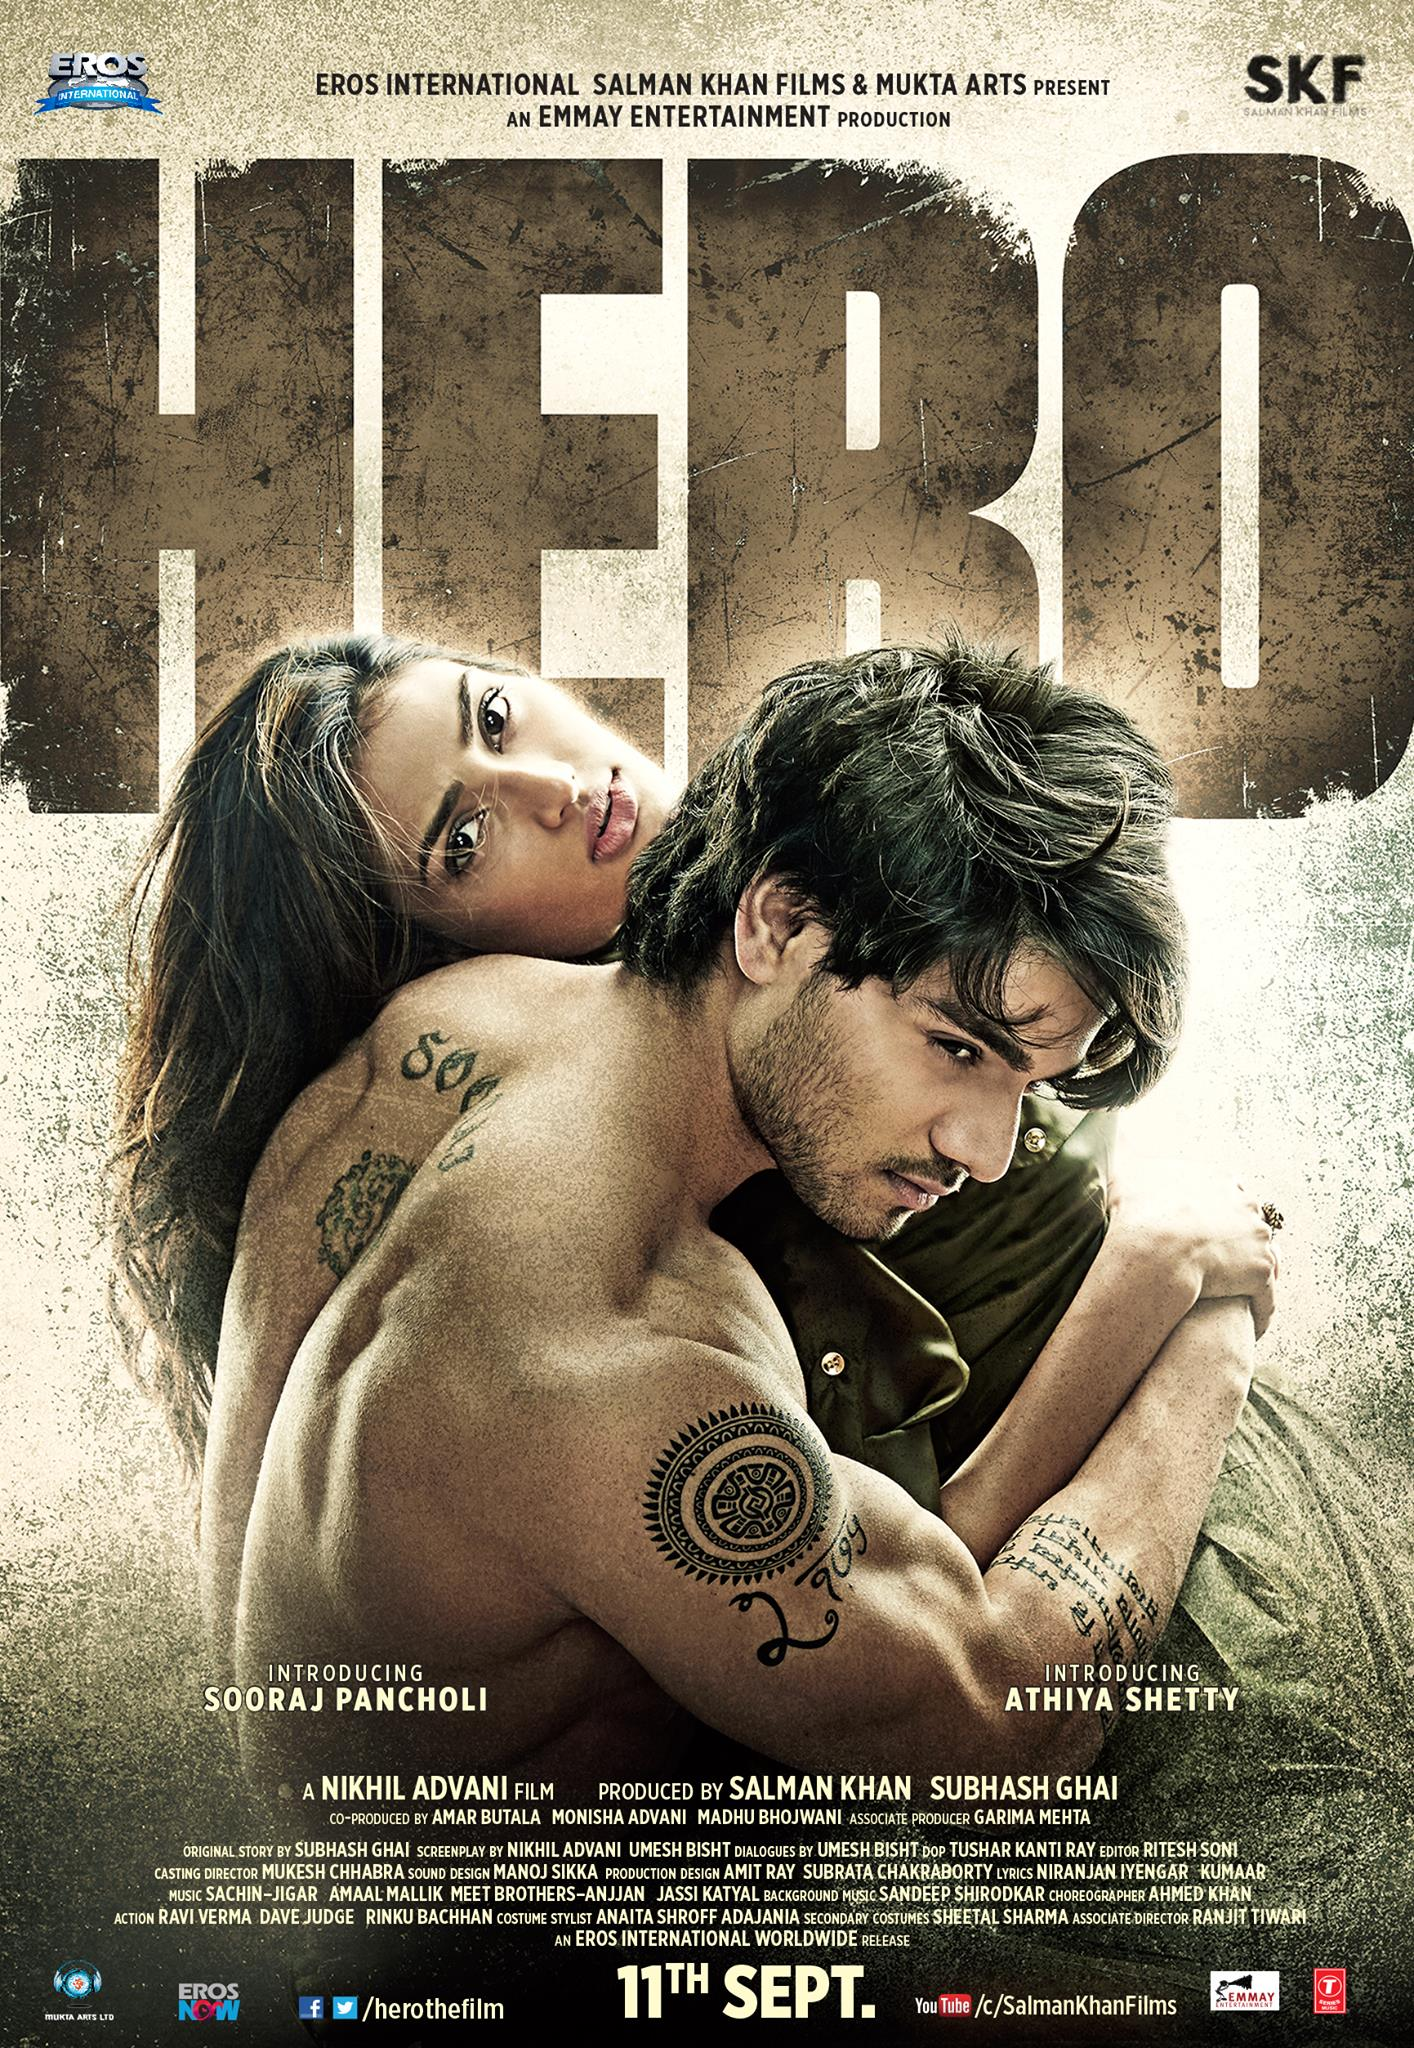 Hero First Look Poster feat. Sooraj Pancholi and Athiya Shetty